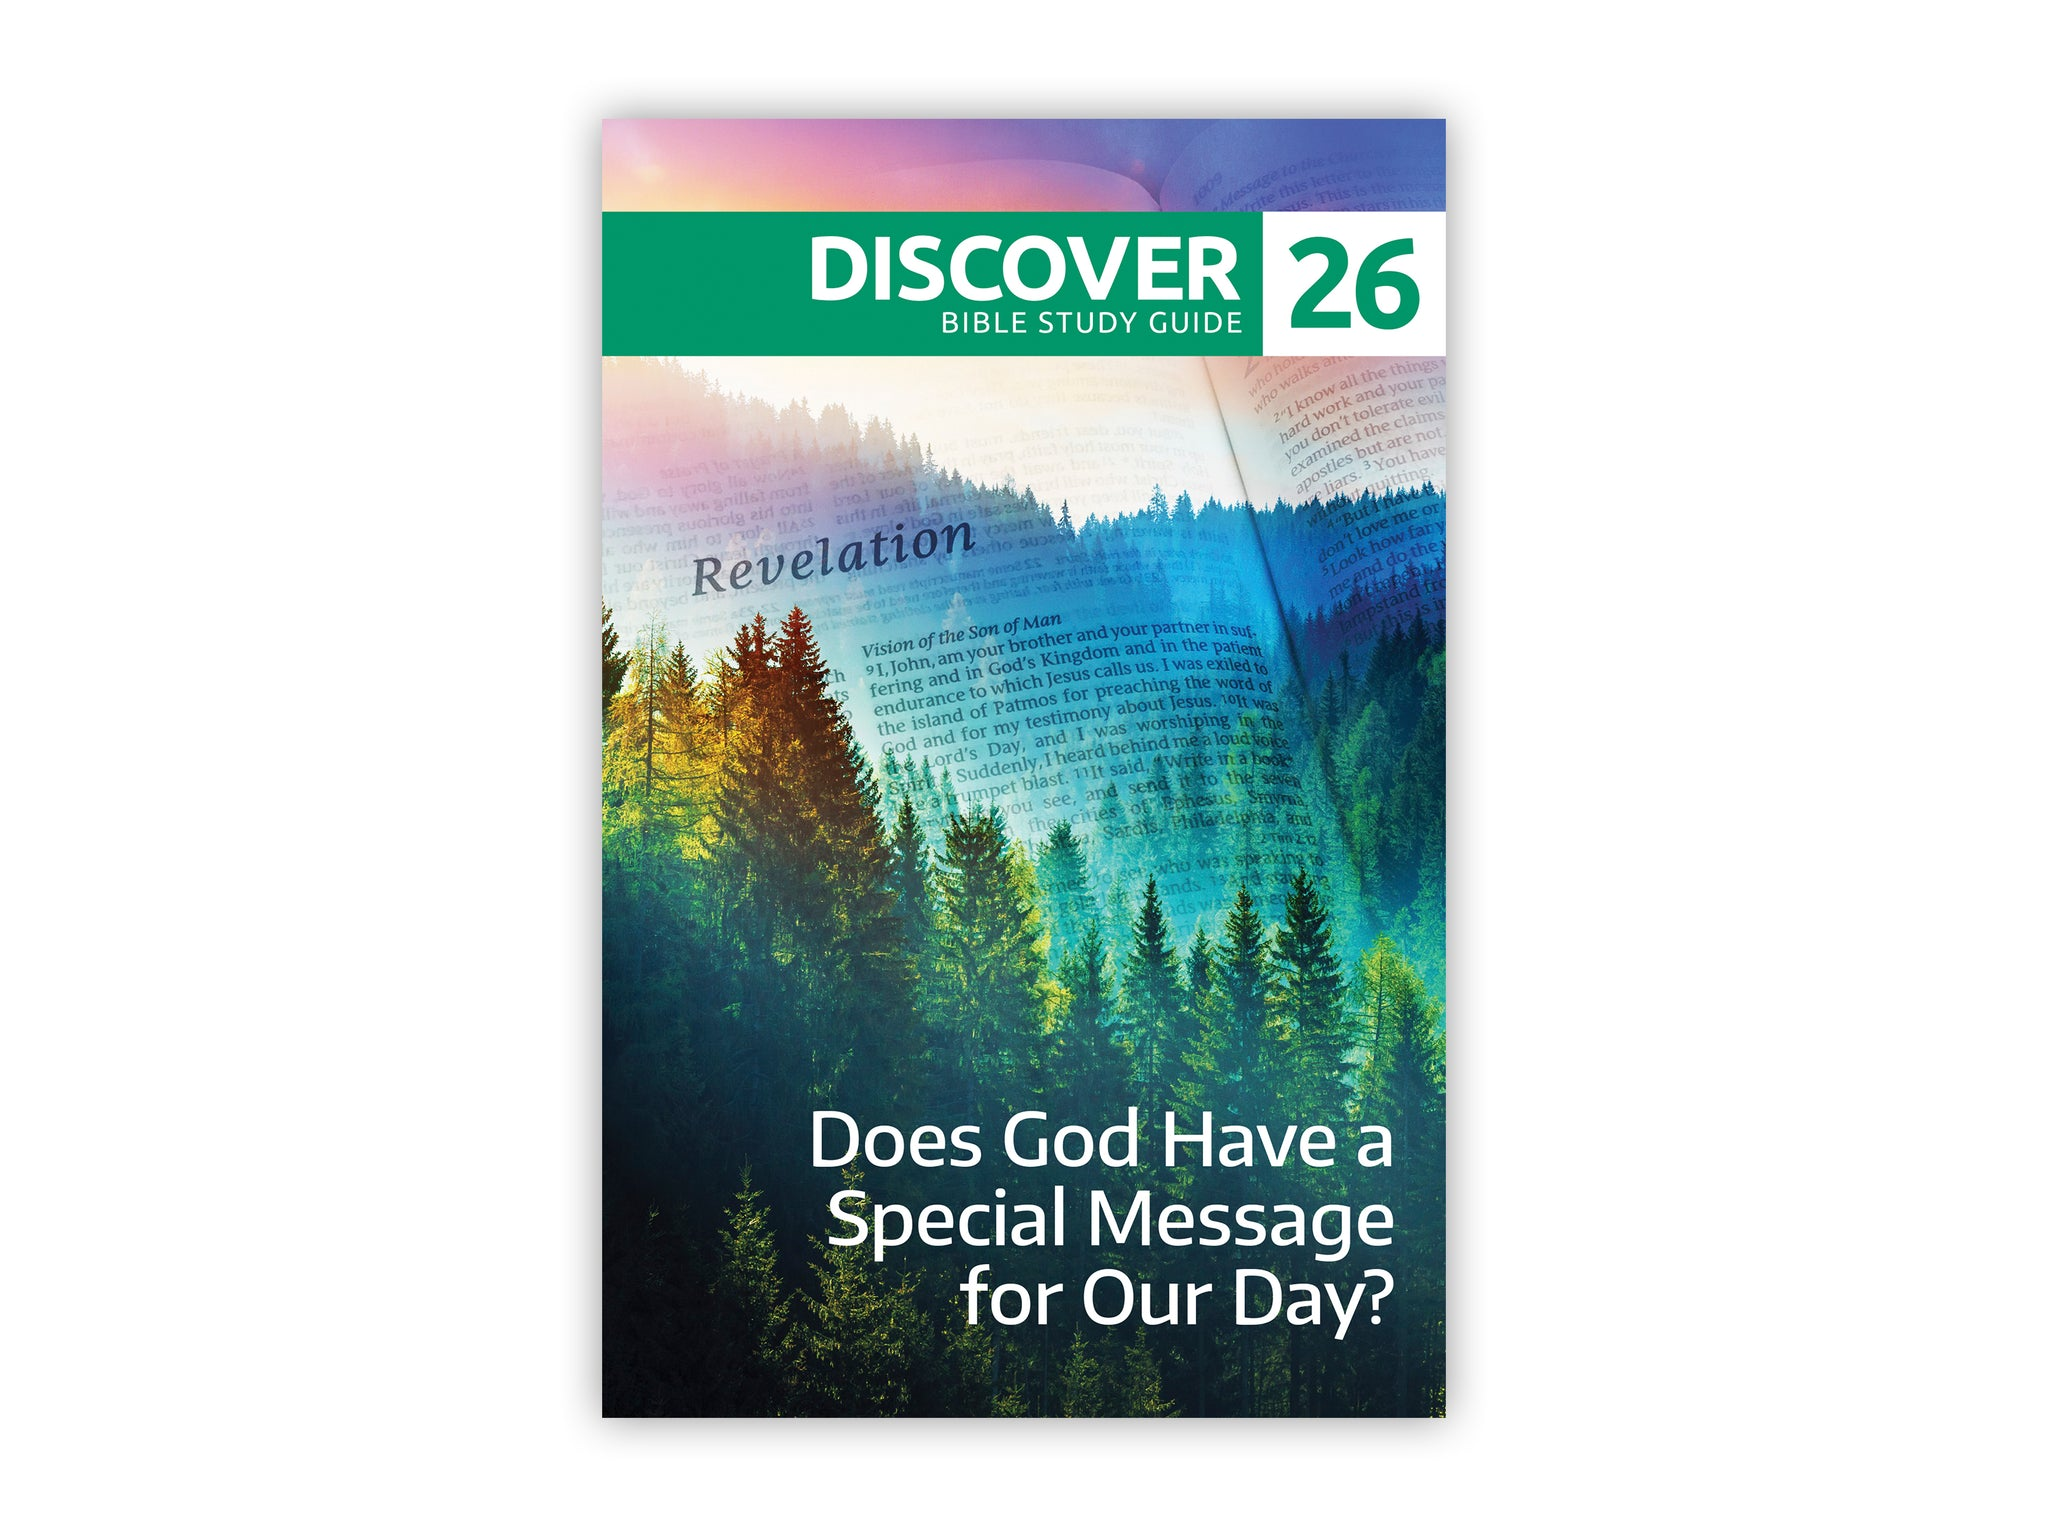 Discover Bible Study Guide #26 - Does God Have a Special Message for Our Day?